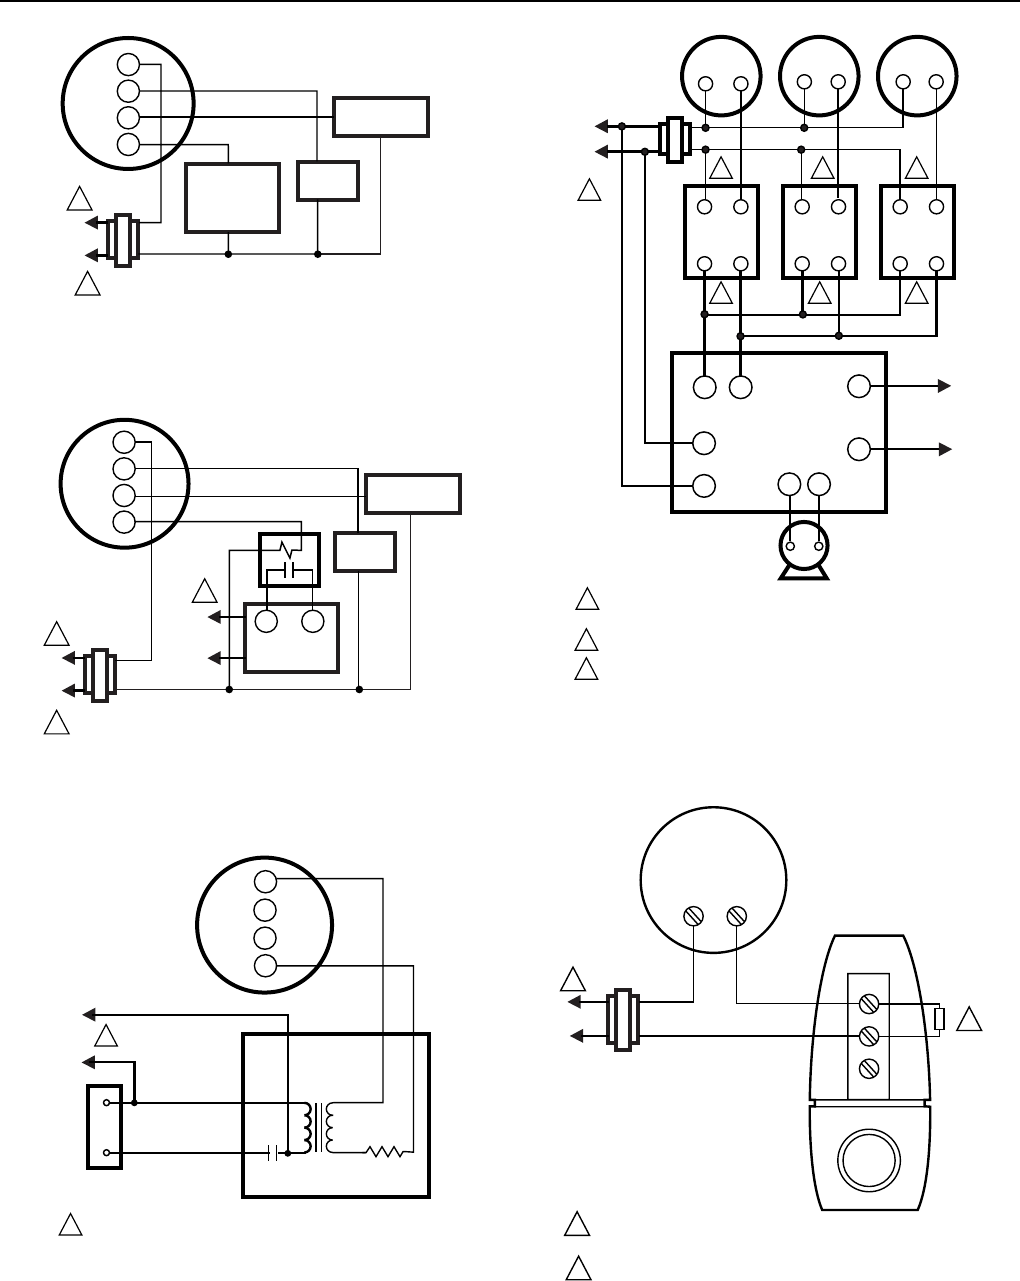 Honeywell V8043 Zone Valve Wiring Diagram from manualsdump.com